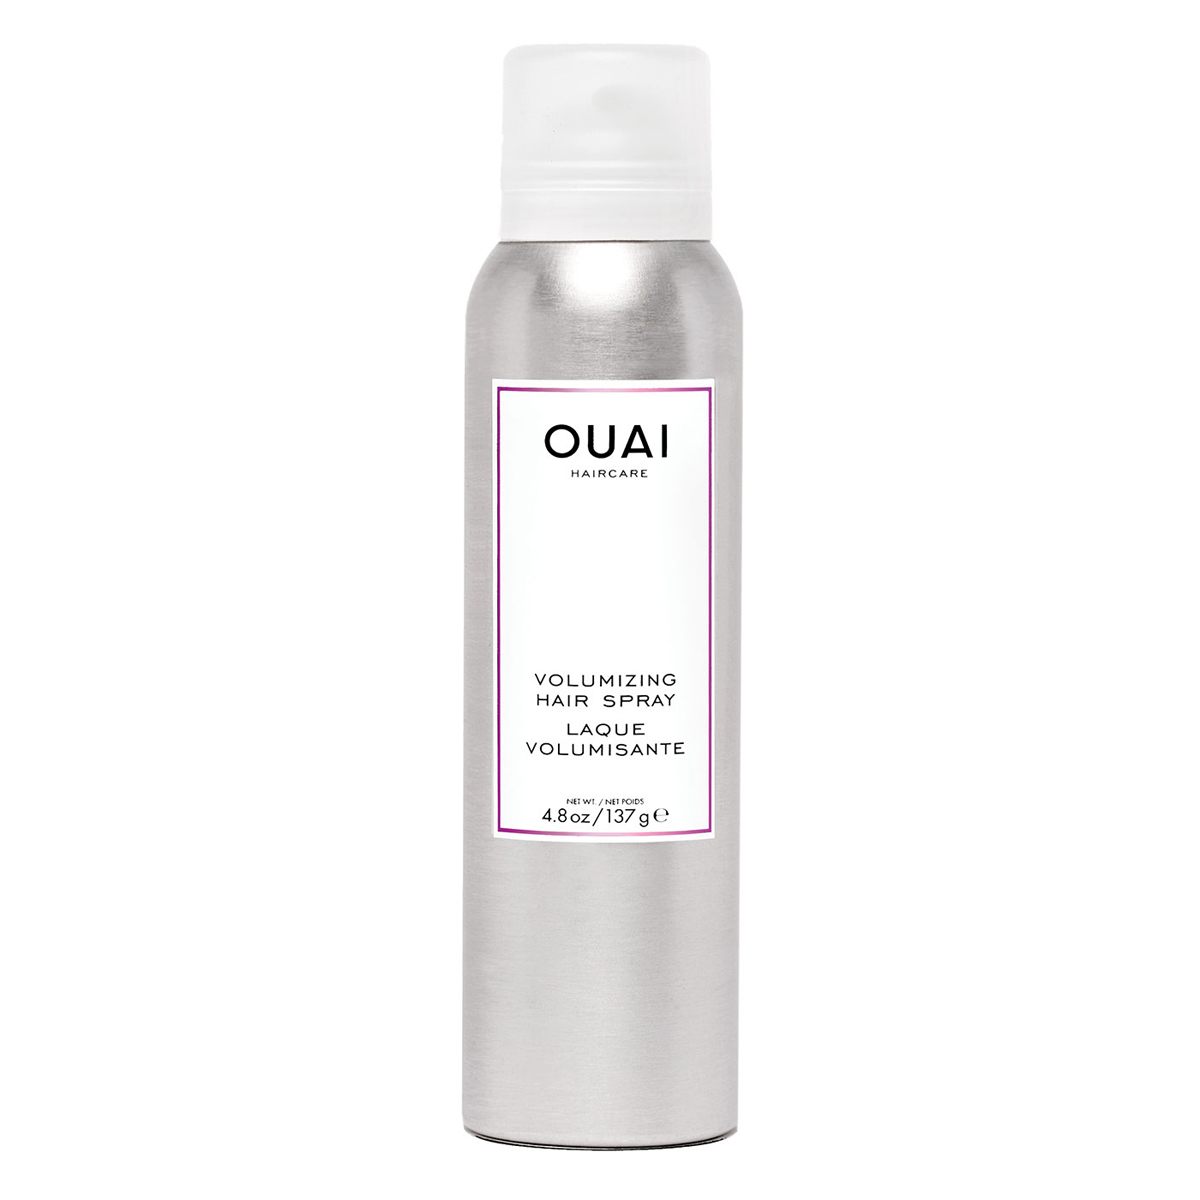 OUAI Volumizing Hair Spray 137 gr